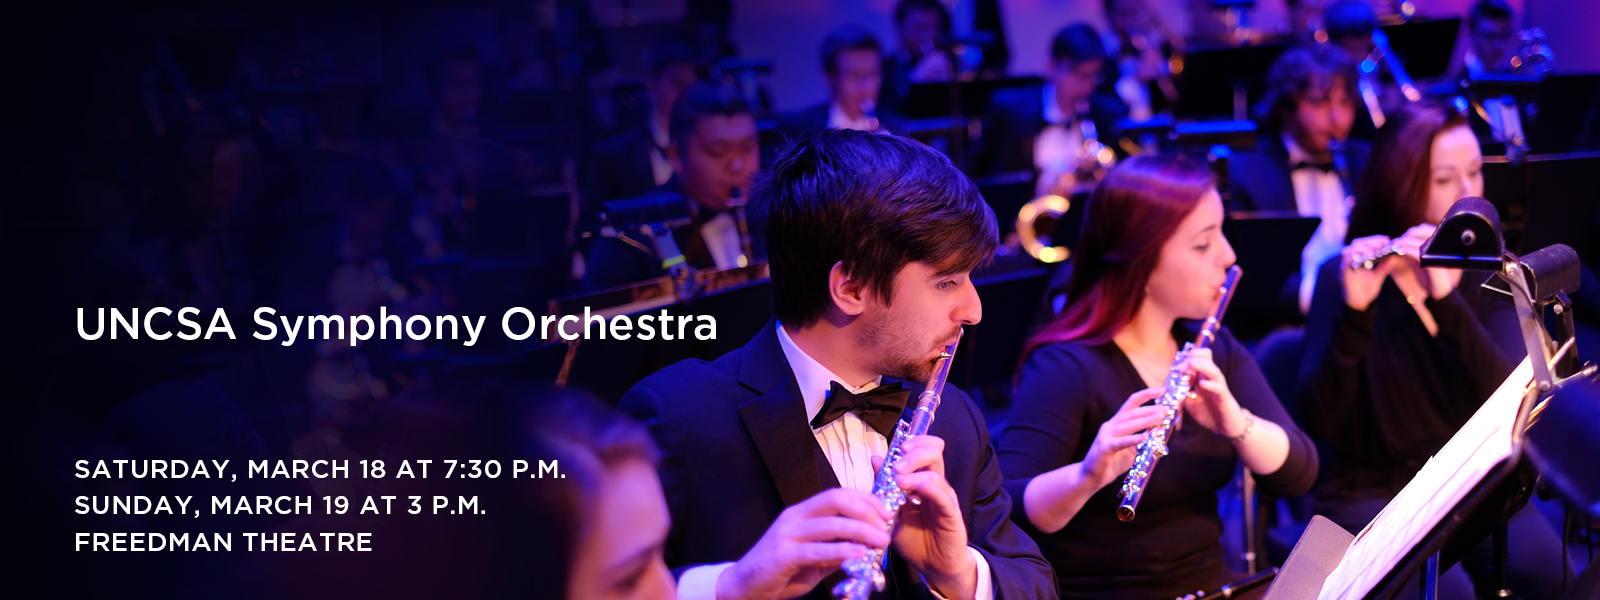 An immersive concert experience featuring works by Dvorak, Bloch, and Berlioz. >> BUY TICKETS